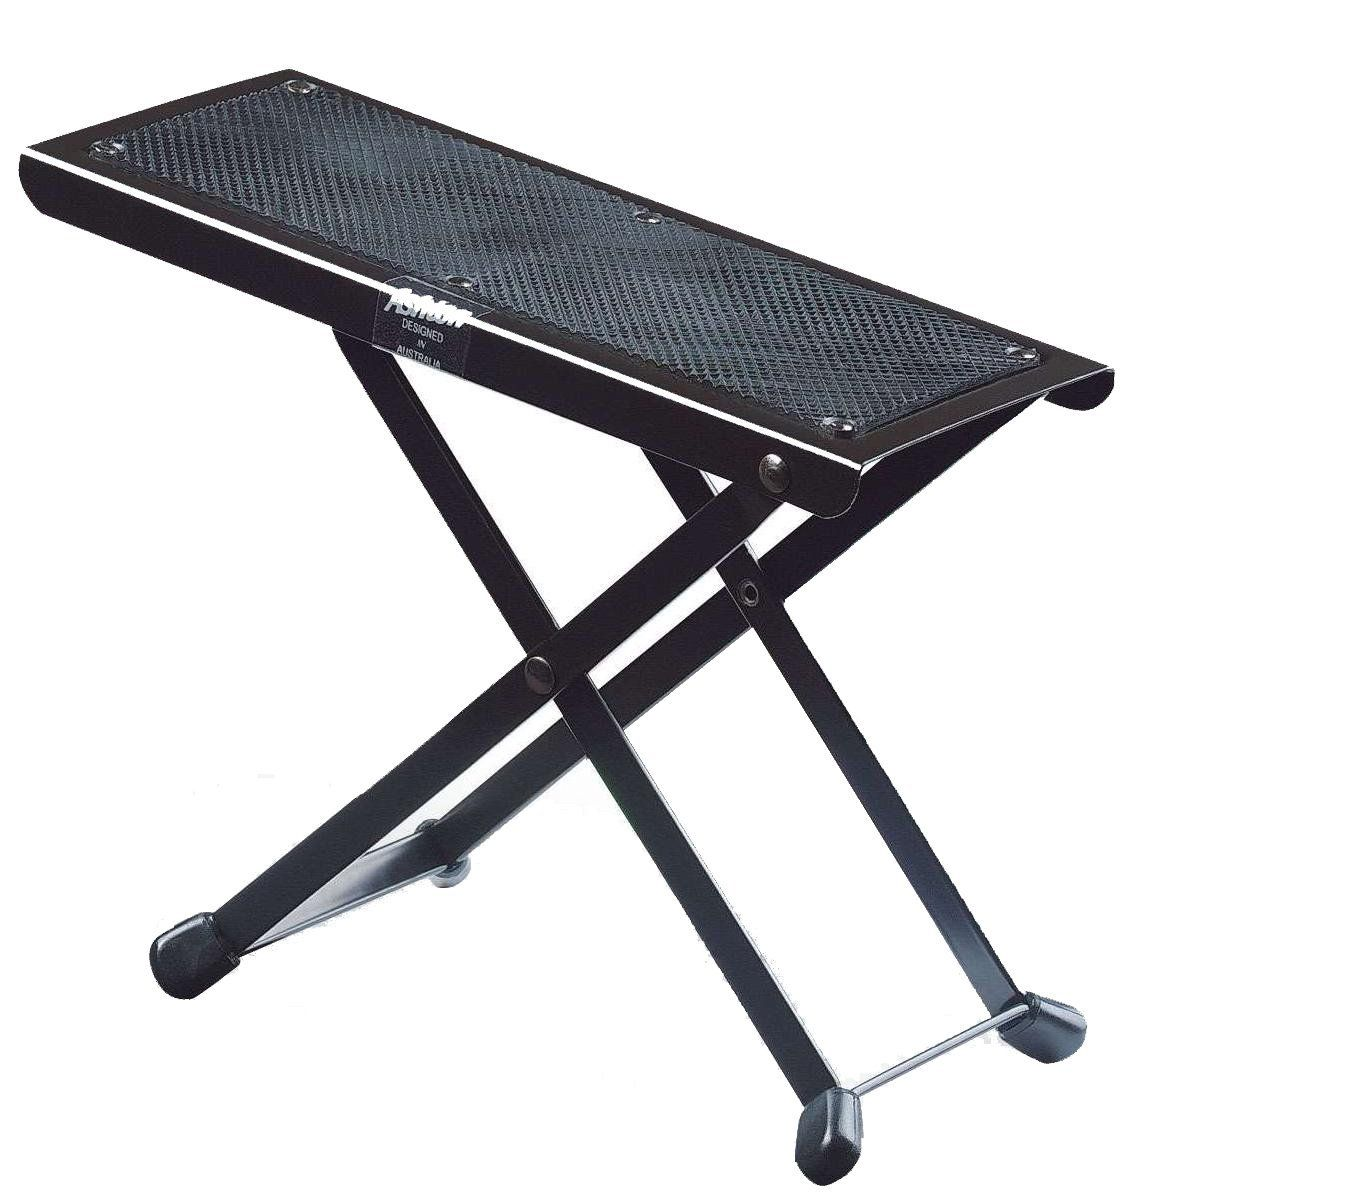 Foot stool for playing all guitars